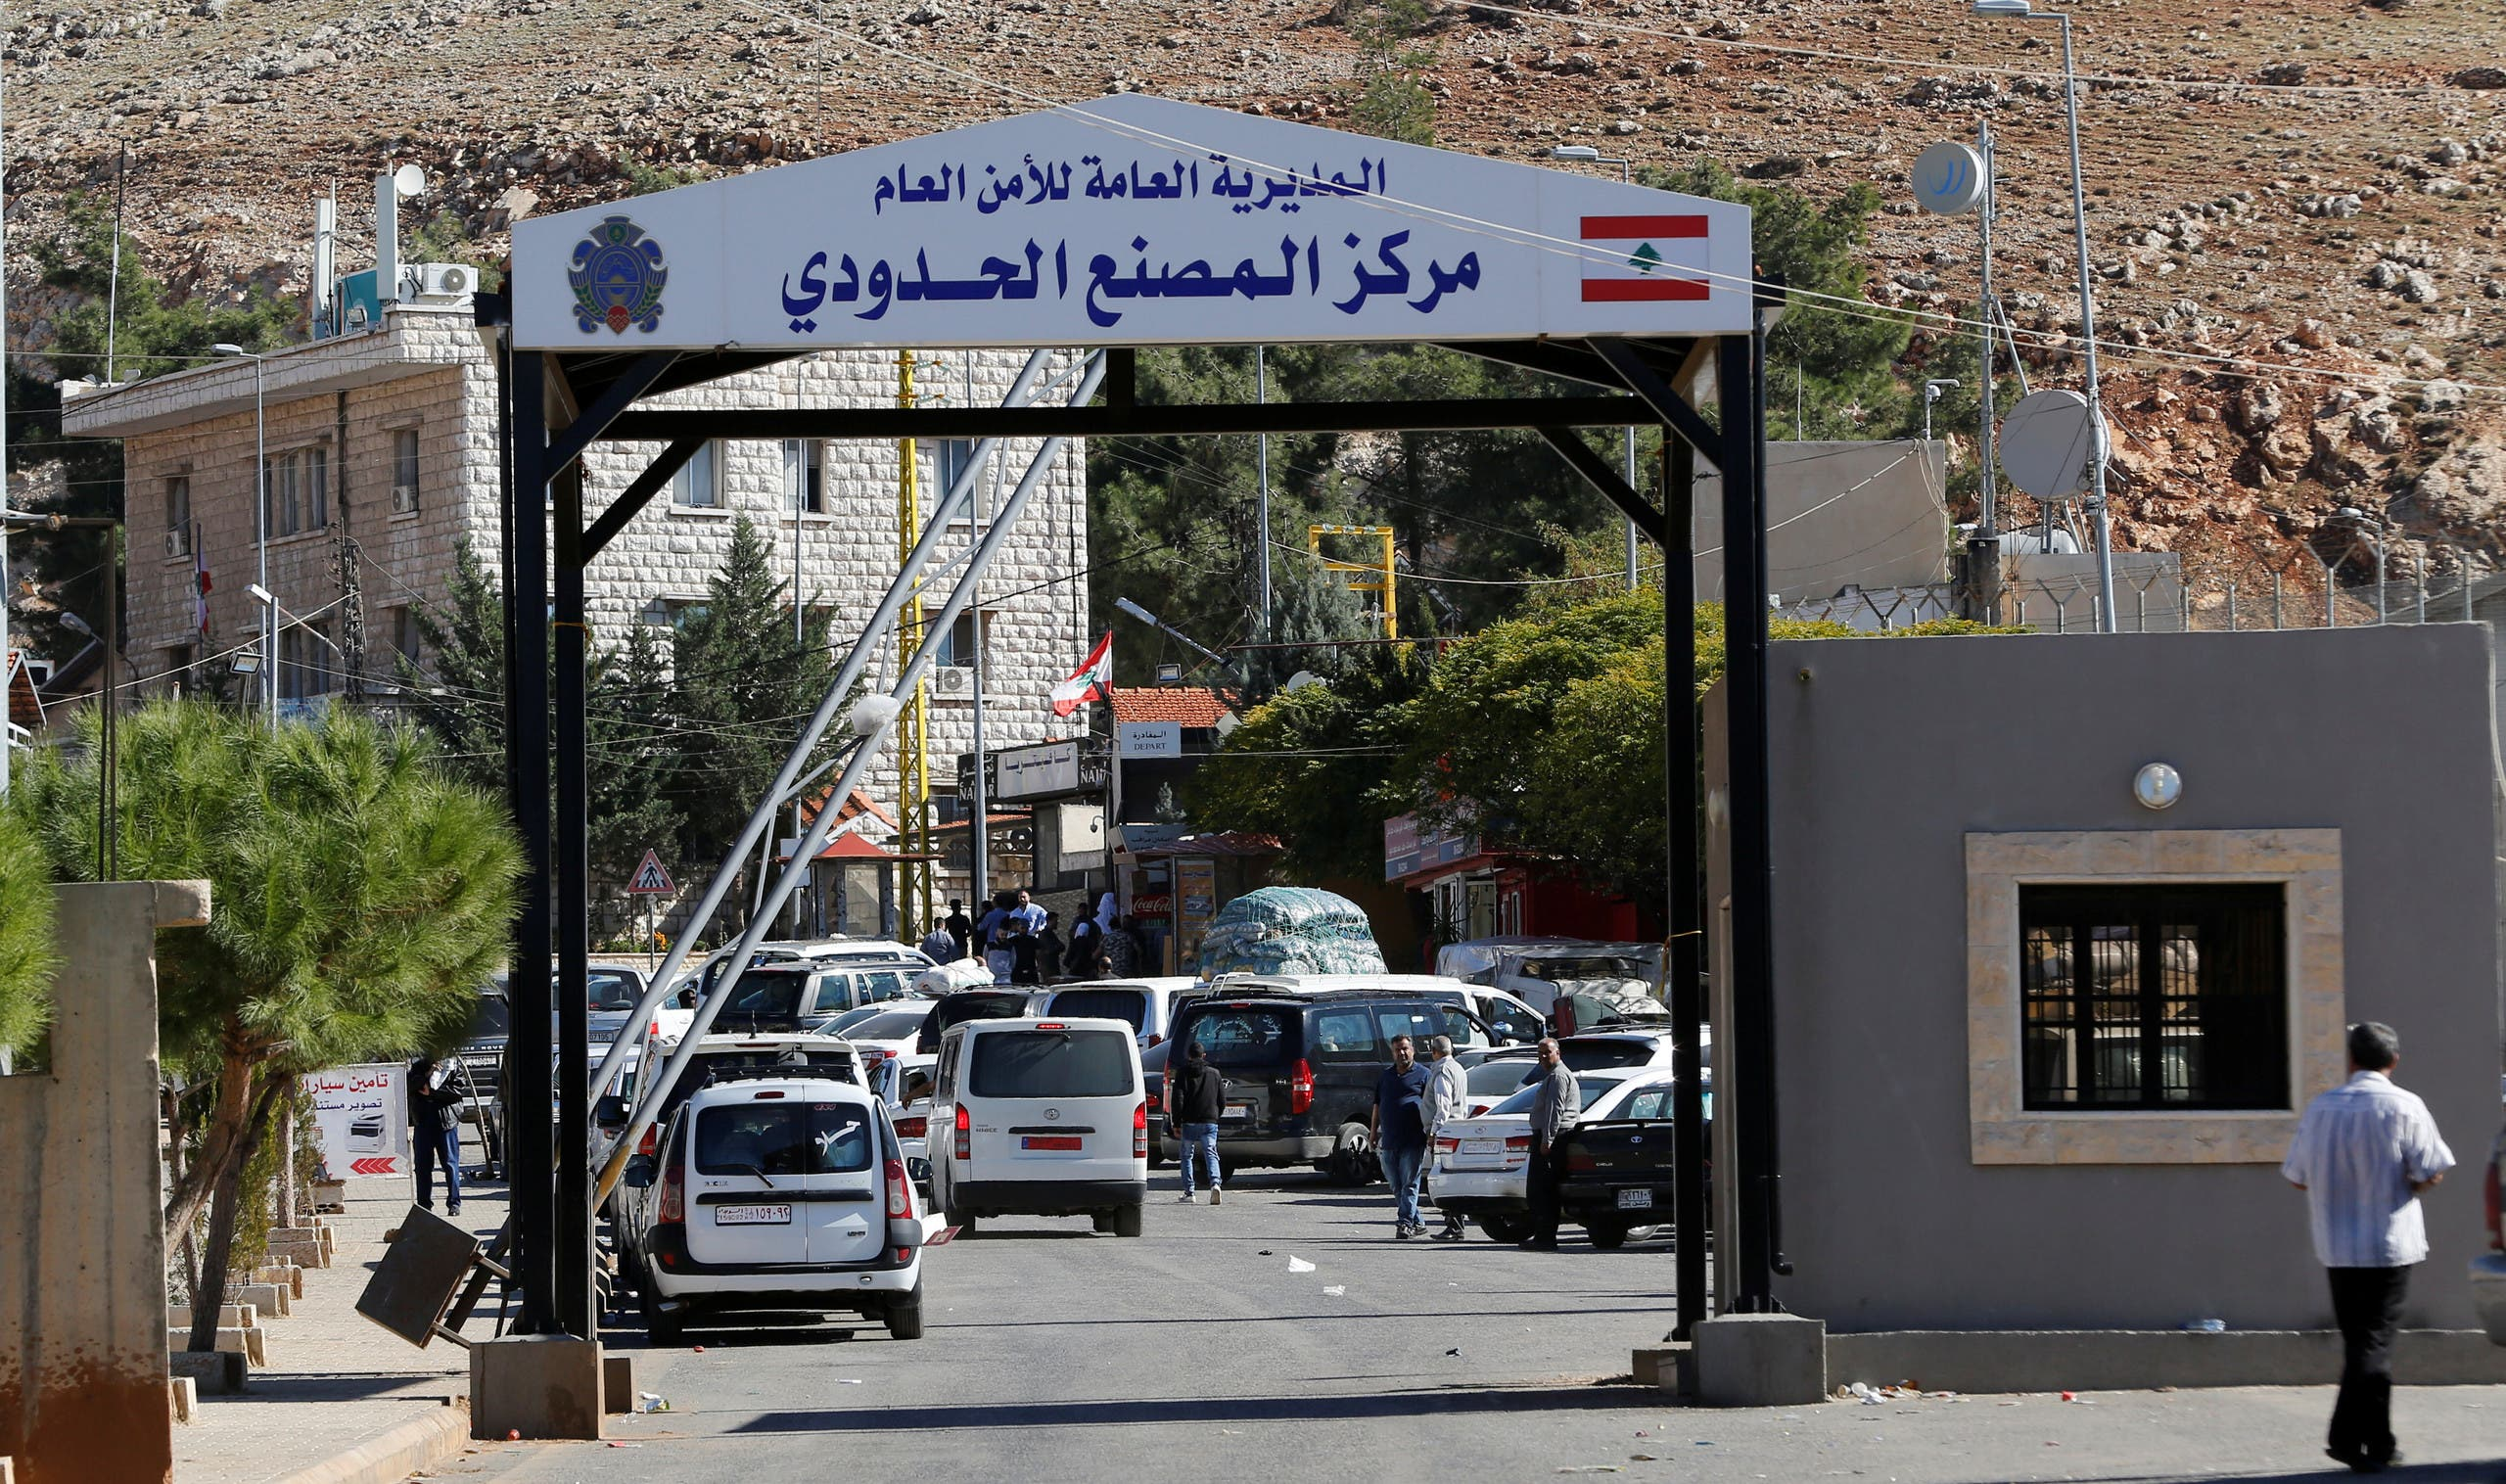 Vehicles are seen at Masnaa border crossing between Lebanon and Syria, Lebanon November 1, 2018. Picture taken November 1, 2018. (Reuters)